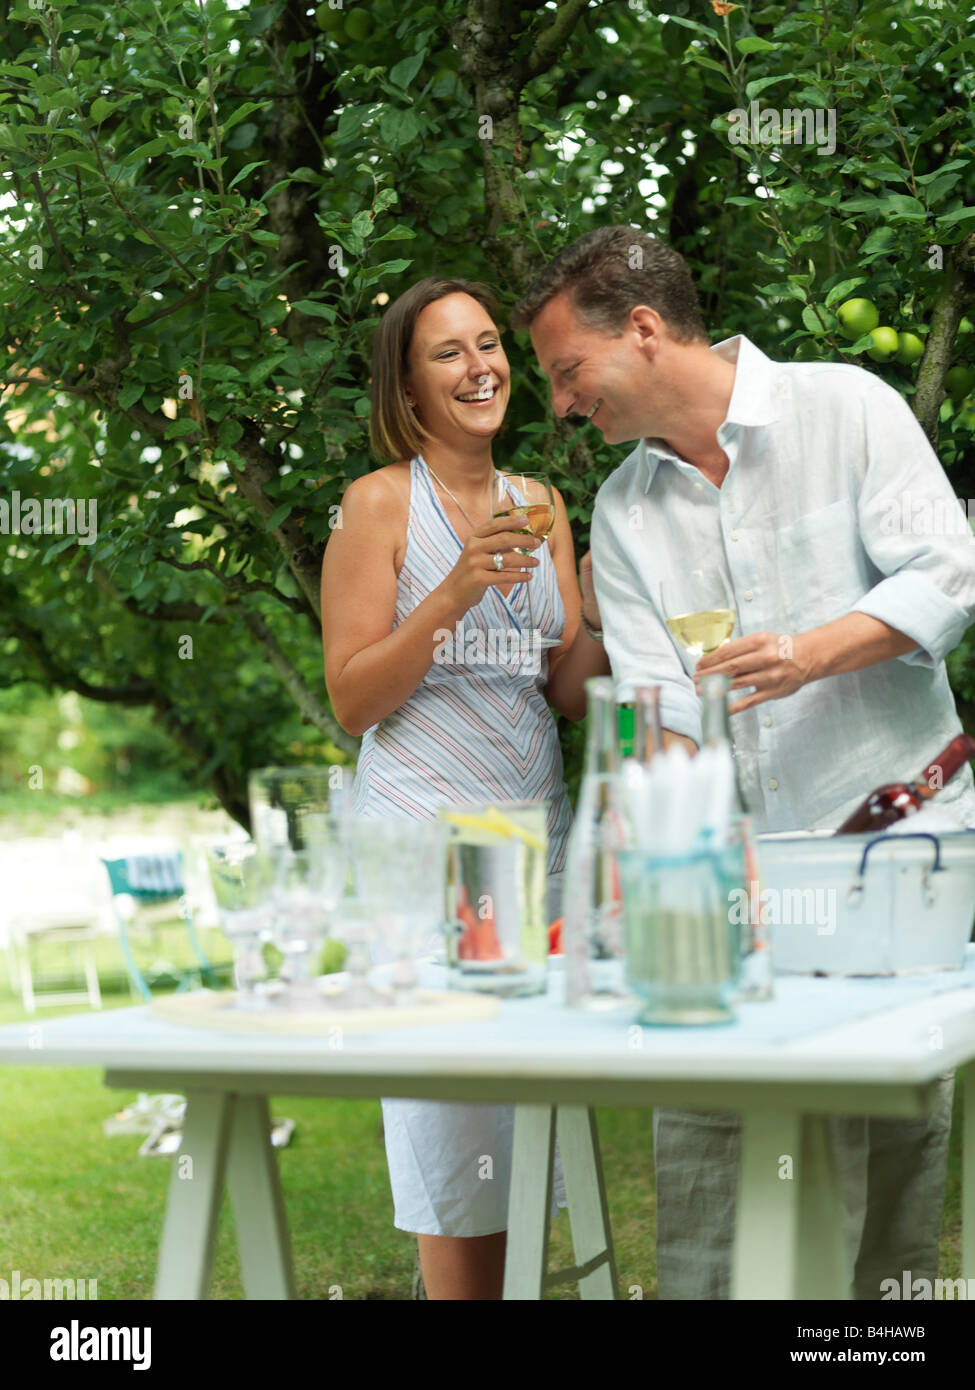 Couple holding glasses of wine and smiling in garden Stock Photo